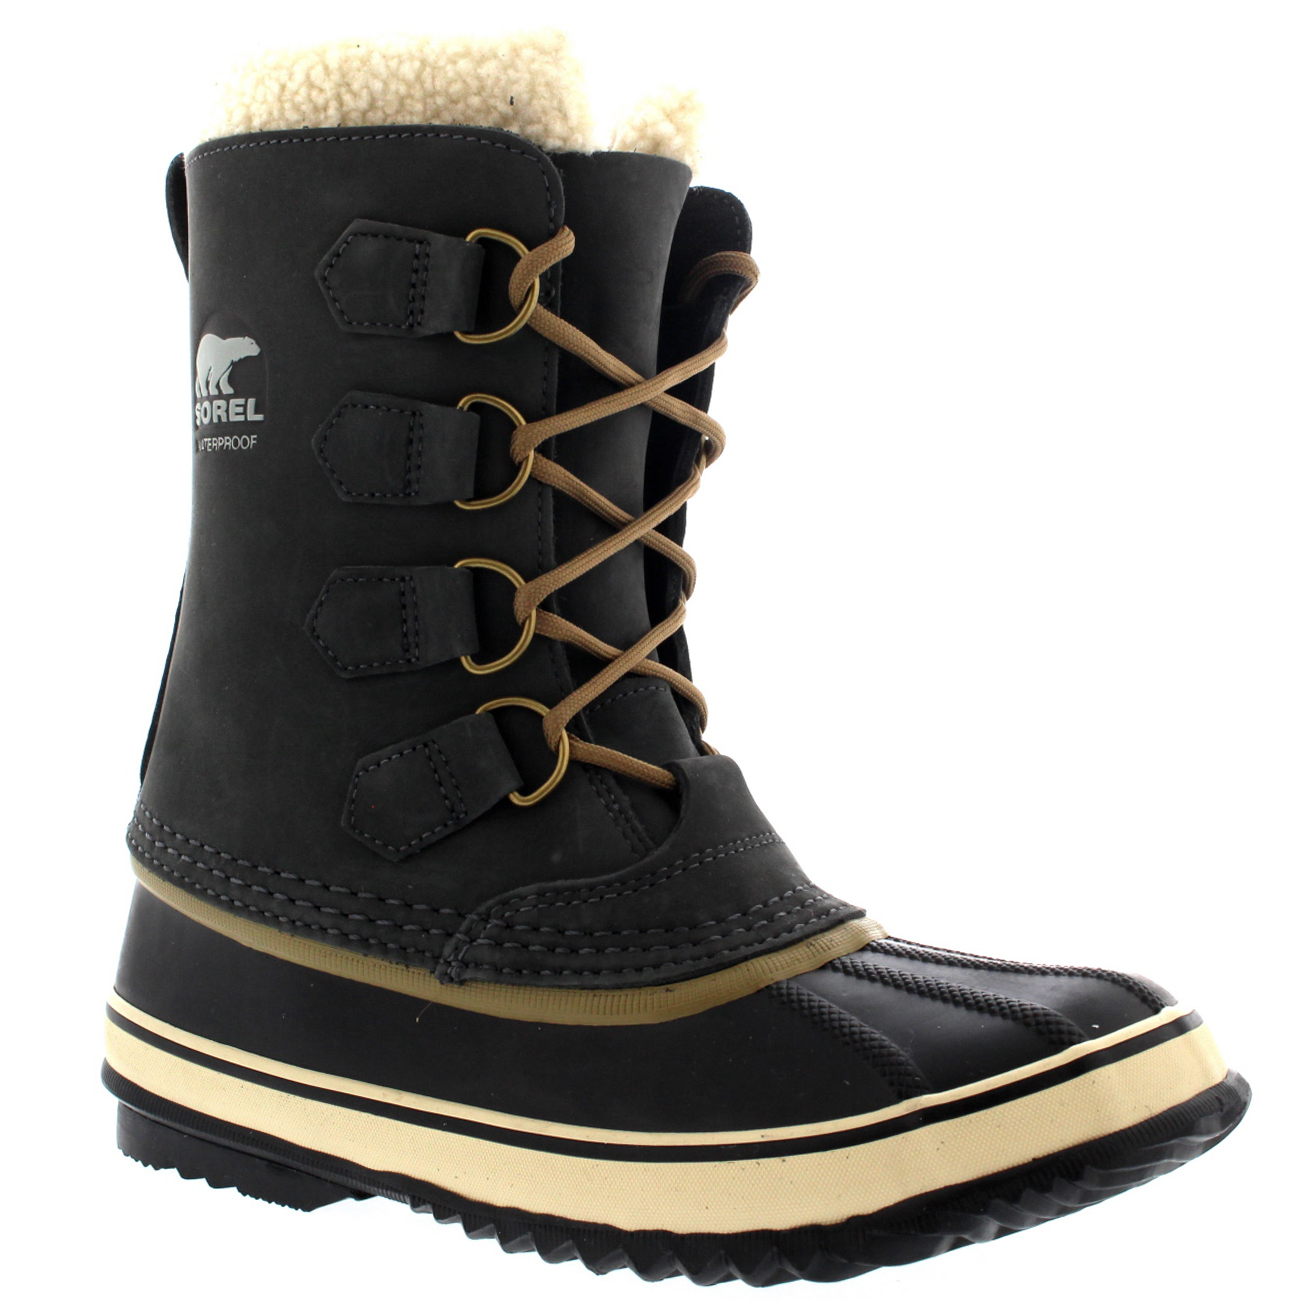 Ladies Sorel 1964 Pac 2 Winter Insulated Duck Rubber Mid